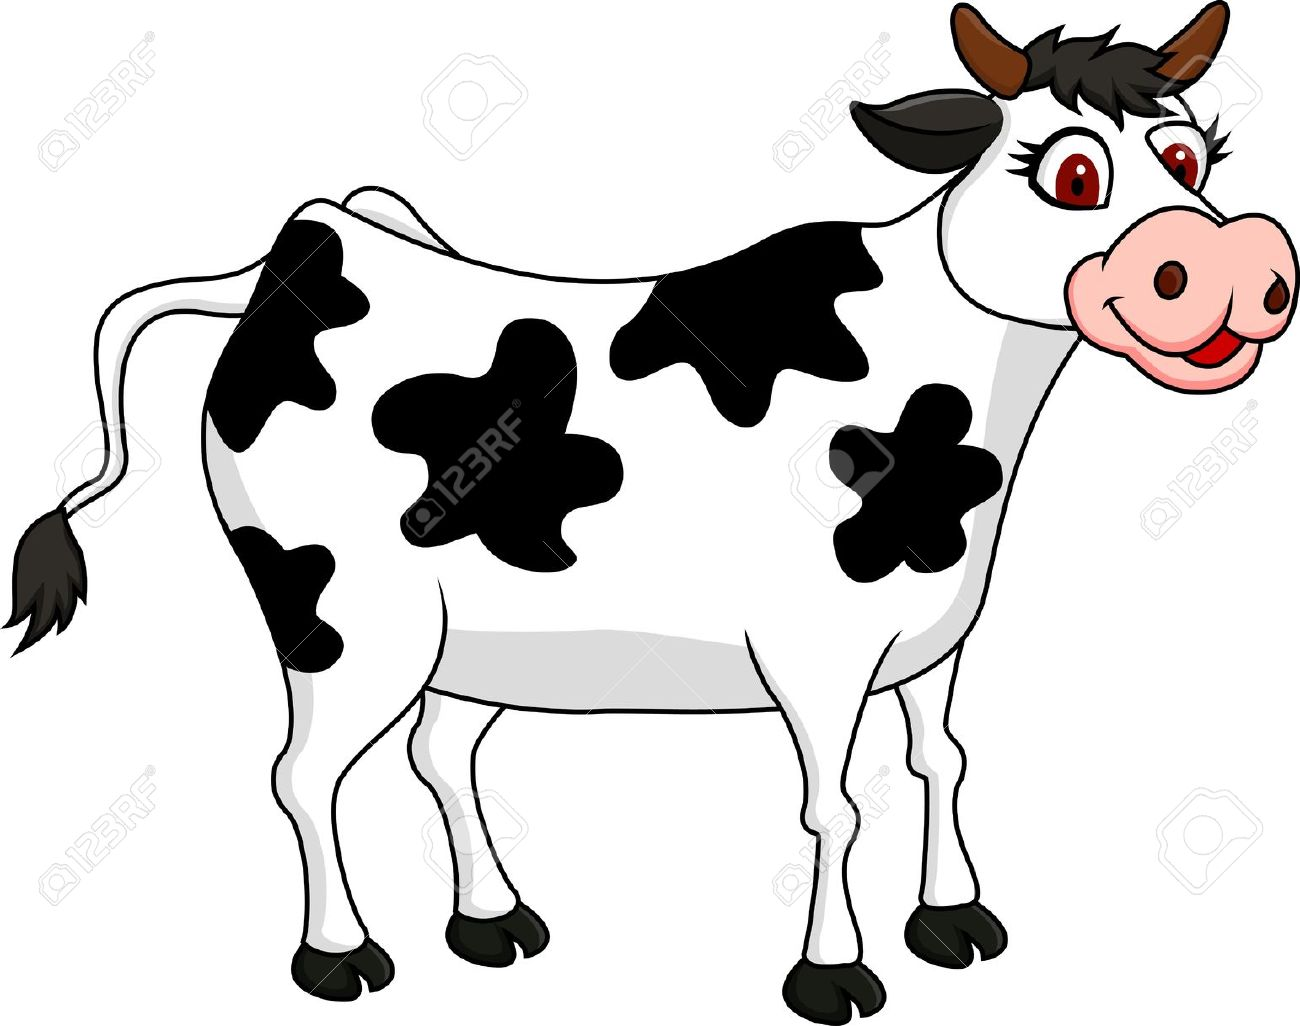 Animals clipart cow. Cattle funny pencil and